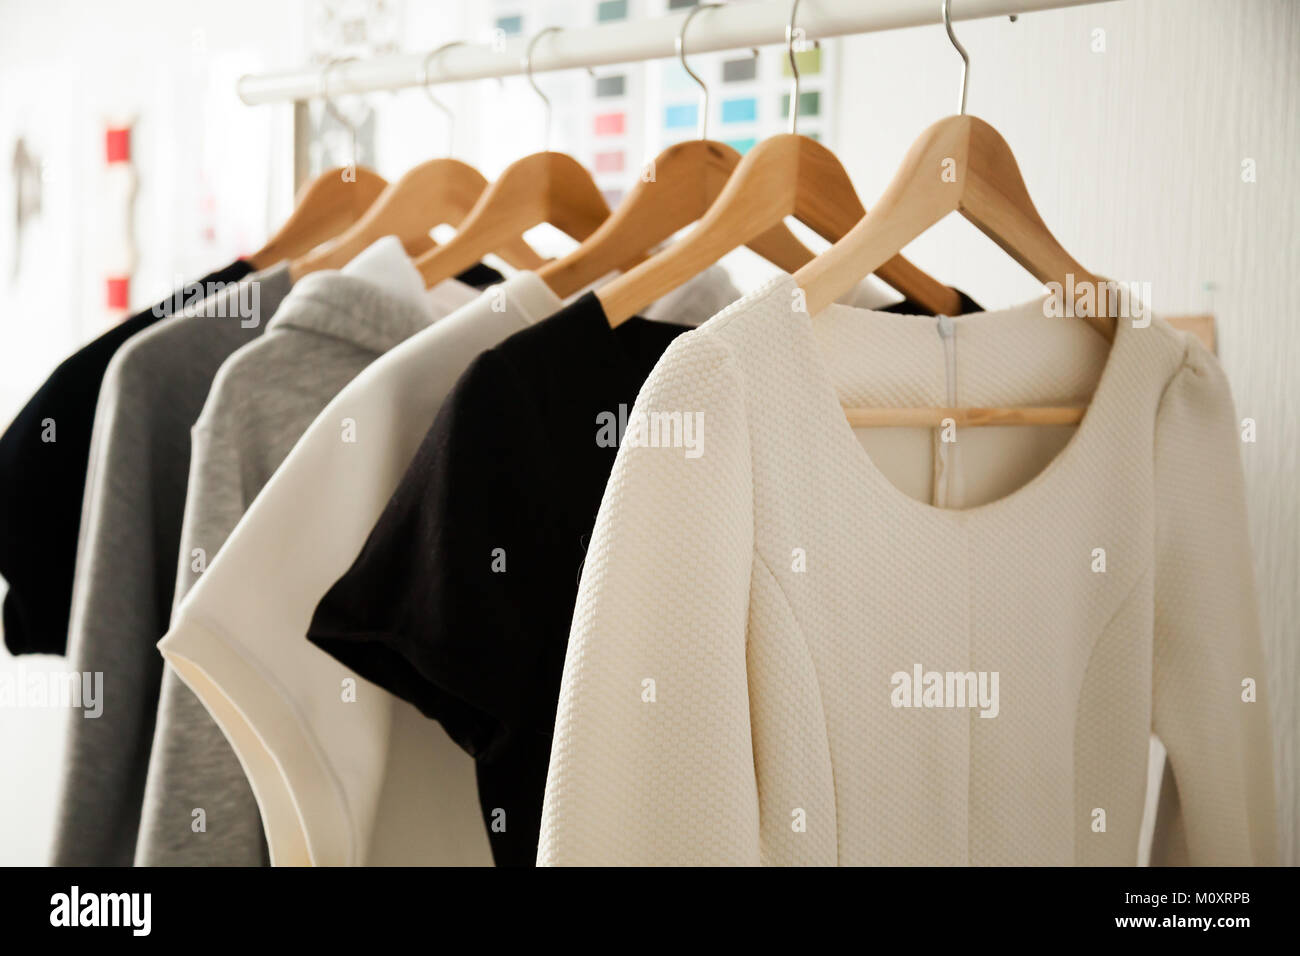 Women clothes hanging on hangers clothing rails, fashion design  - Stock Image